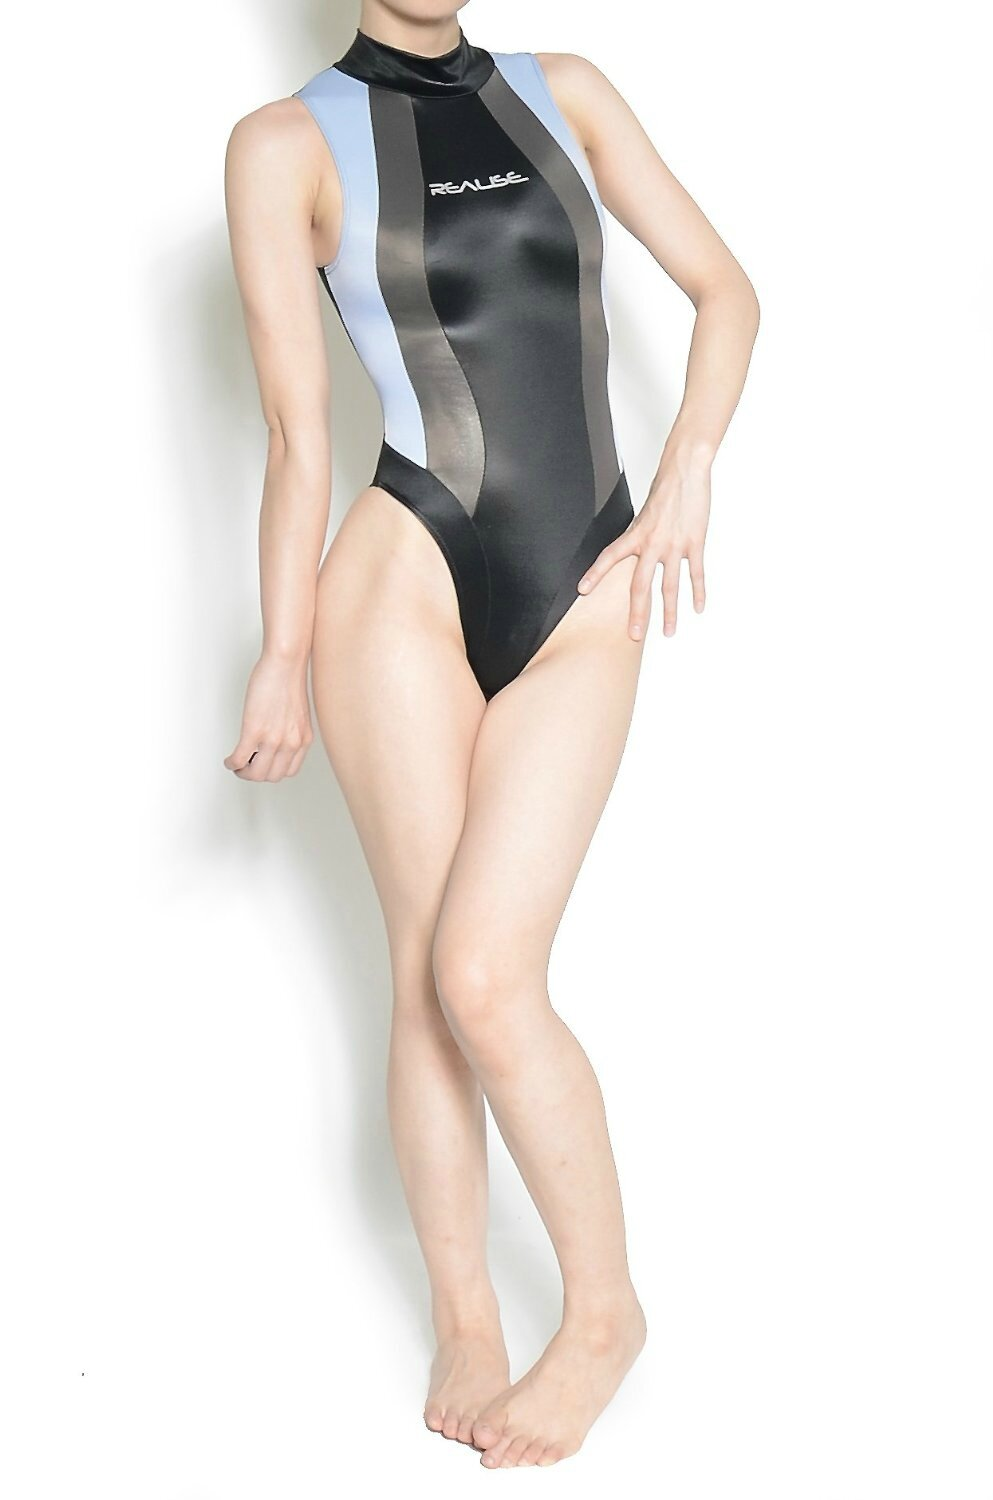 Maillot N-037 Shiny Black/grey/blue UltraThin by Realise